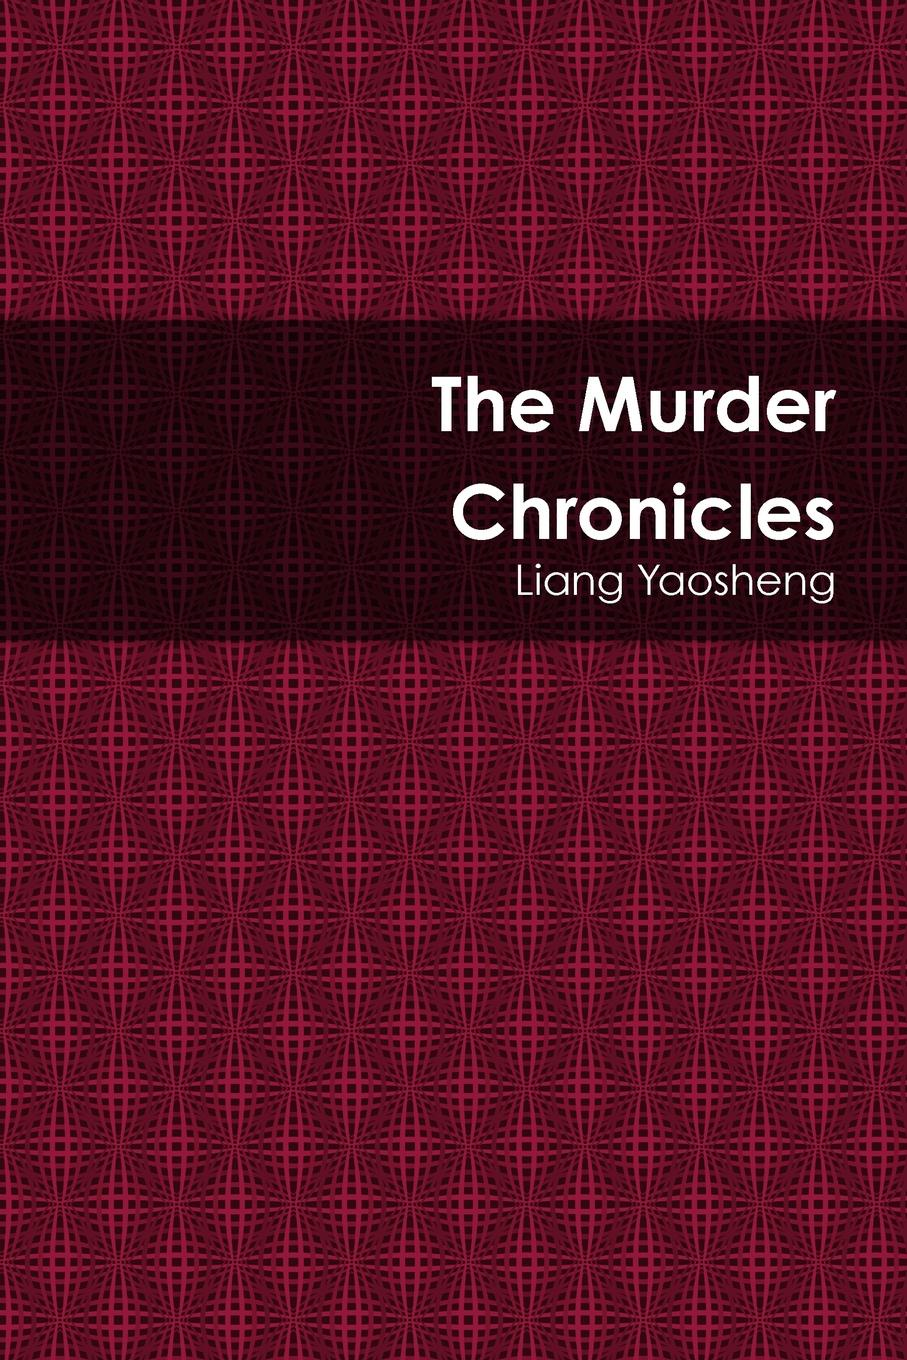 Liang Yaosheng The Murder Chronicles peter hawkins the unquiet grave – short stories